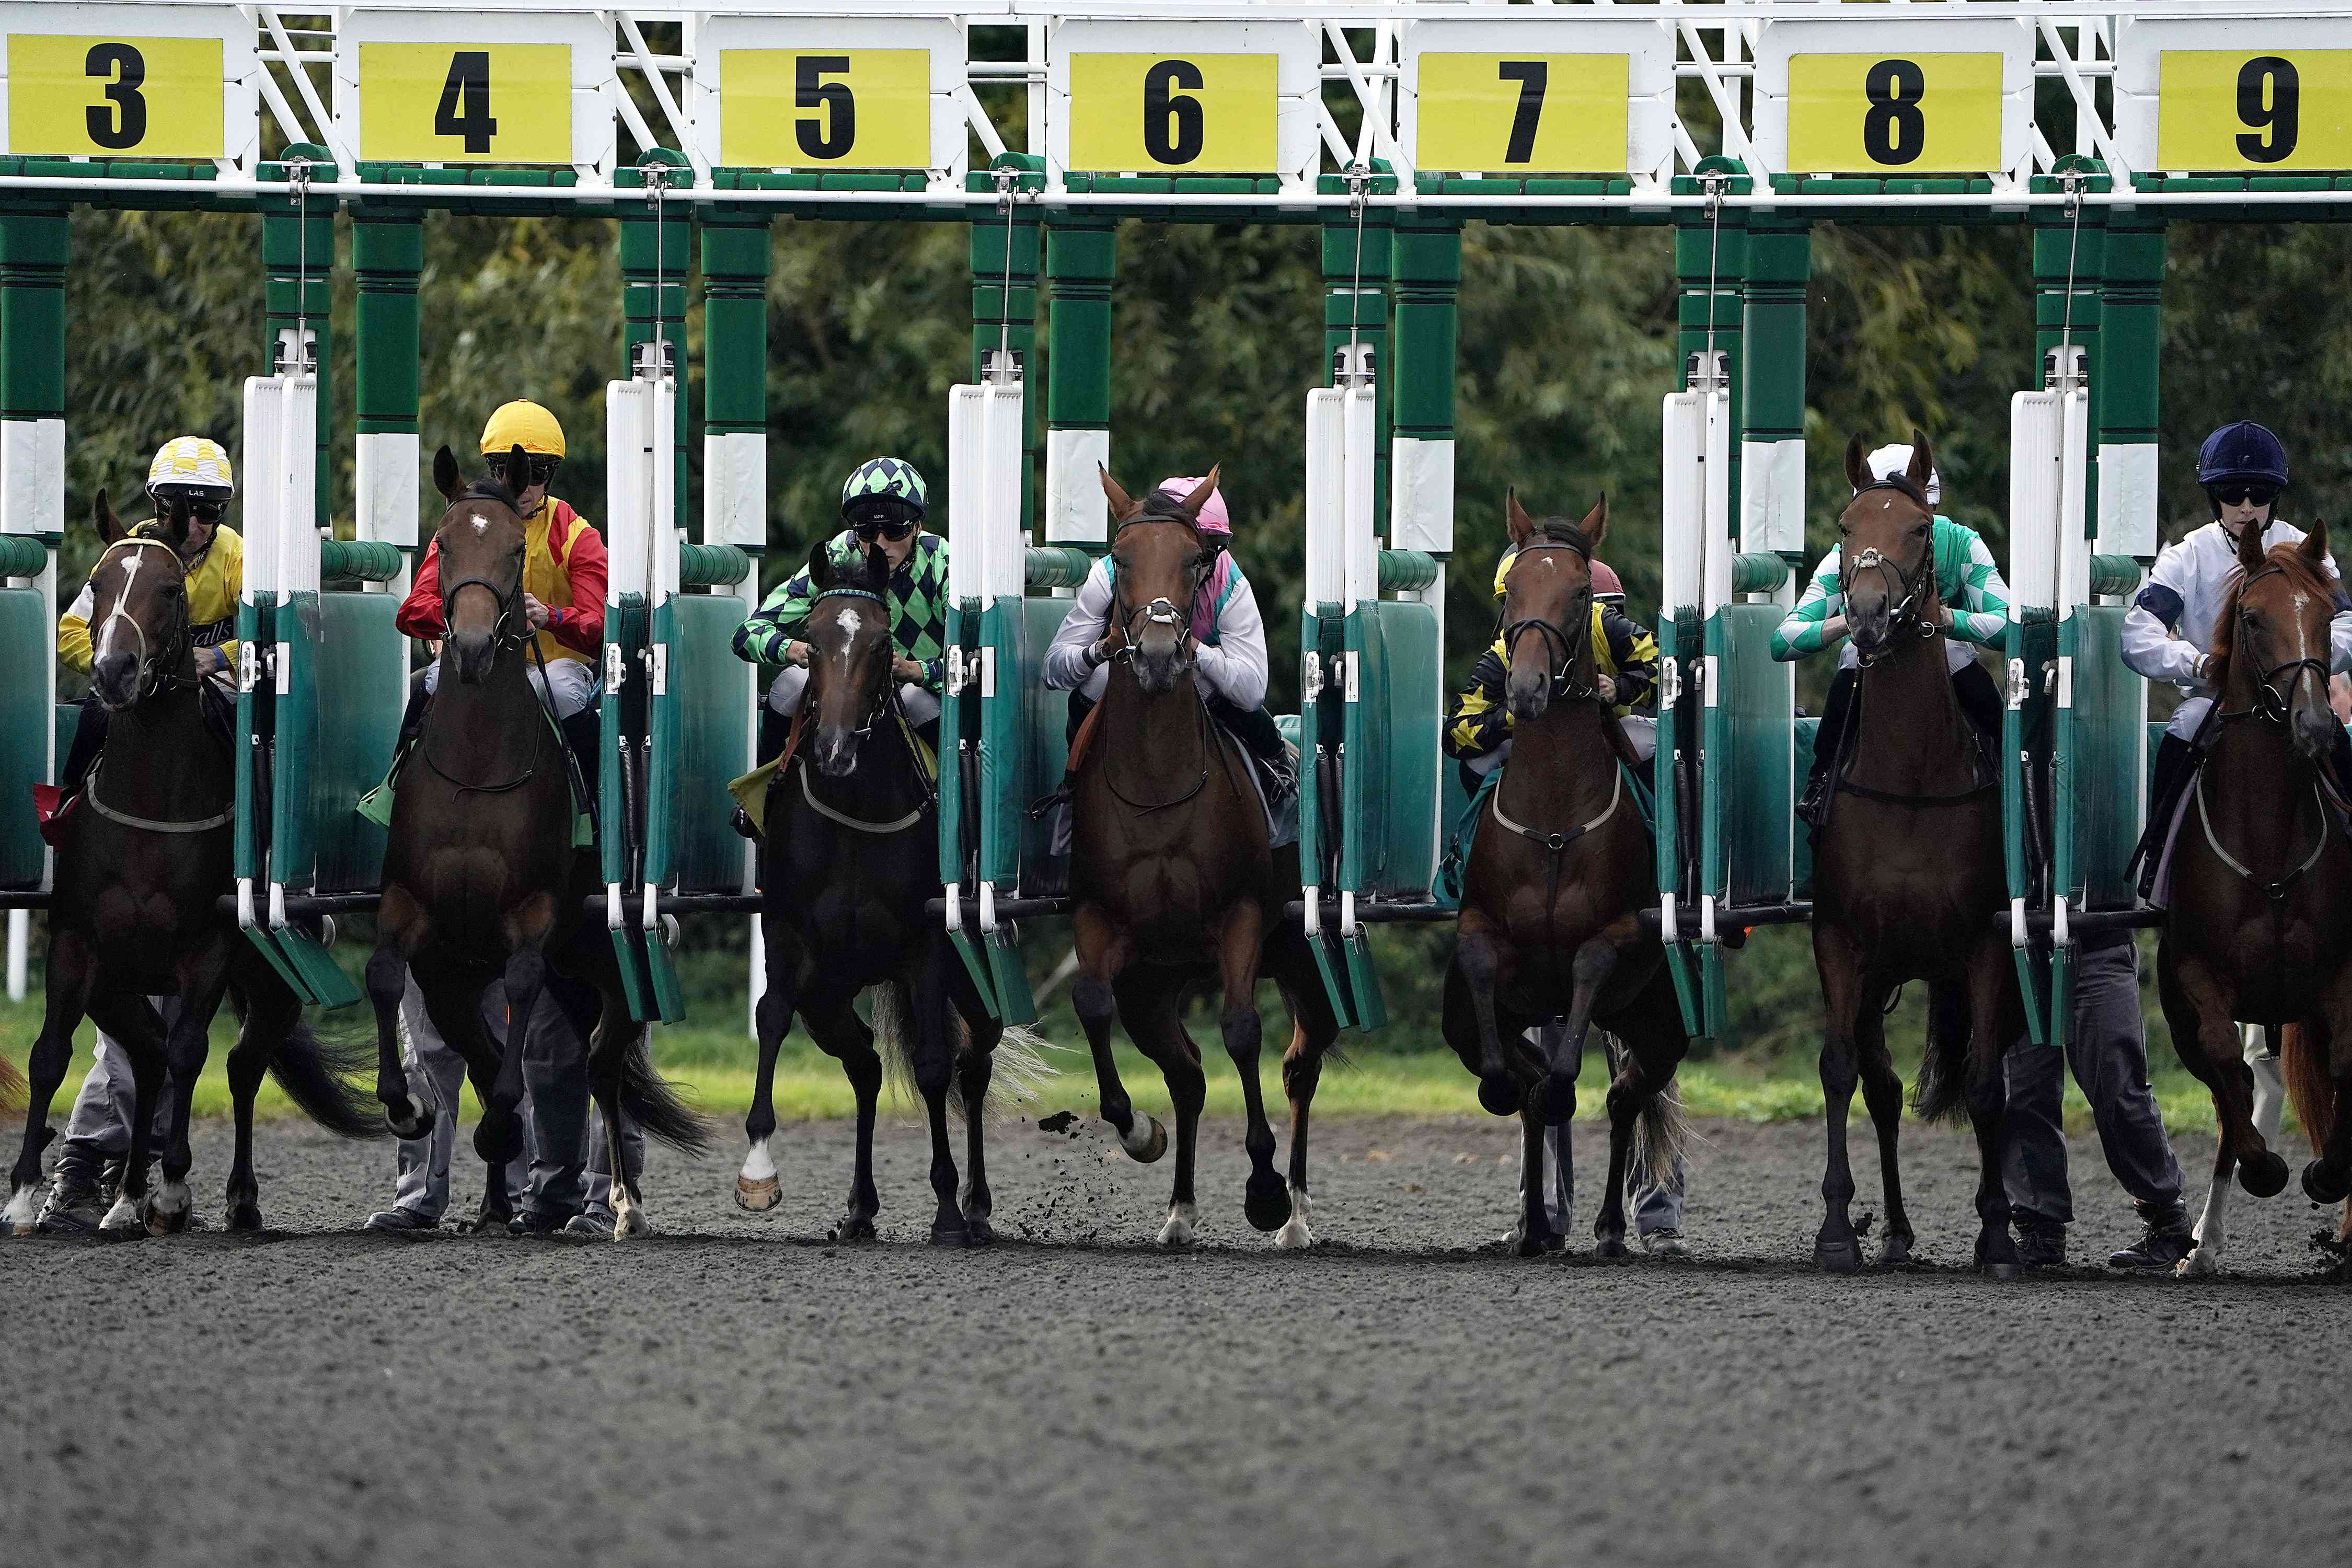 Horses leave their starting stalls at Kempton Park Racecourse